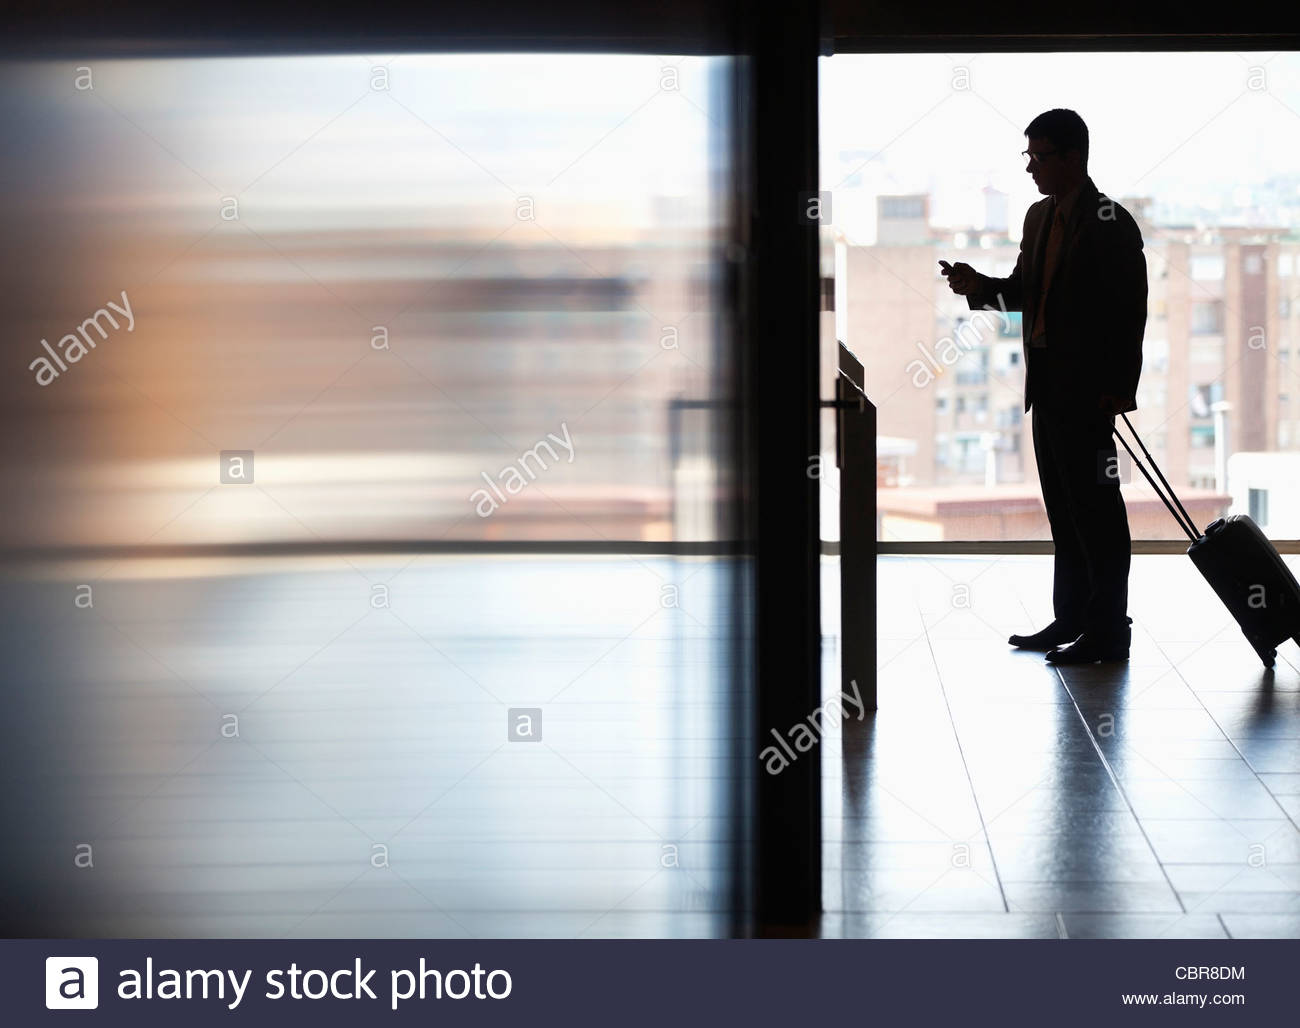 Businessman pulling luggage and using cell phone - Stock Image